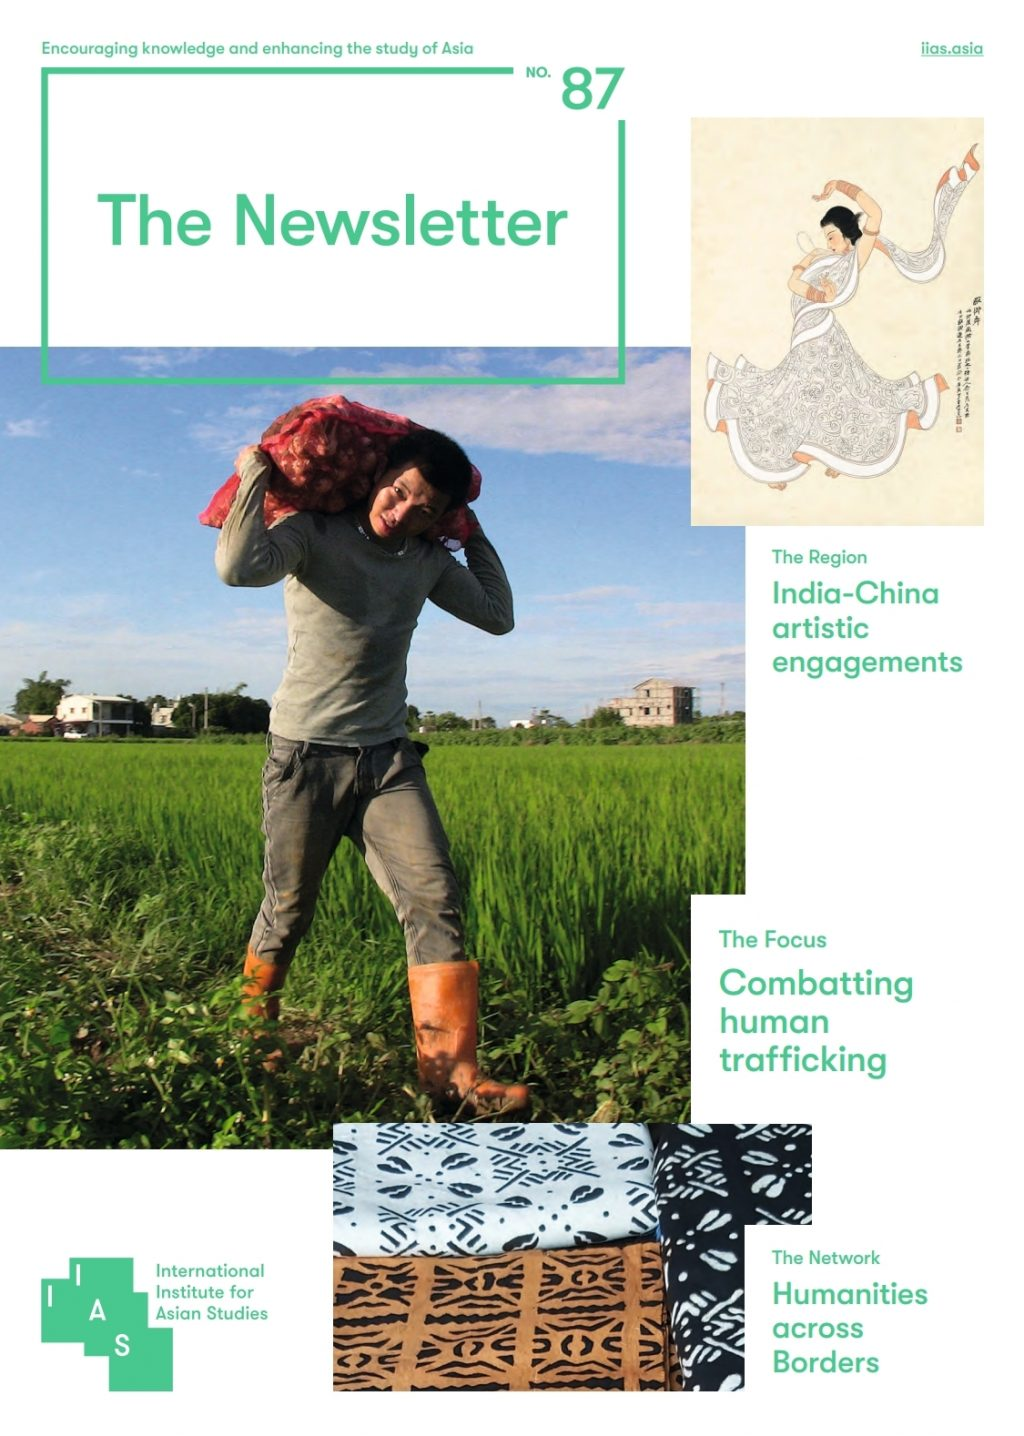 IIAS The Newsletter Vol. 87- News from Northeast Asia